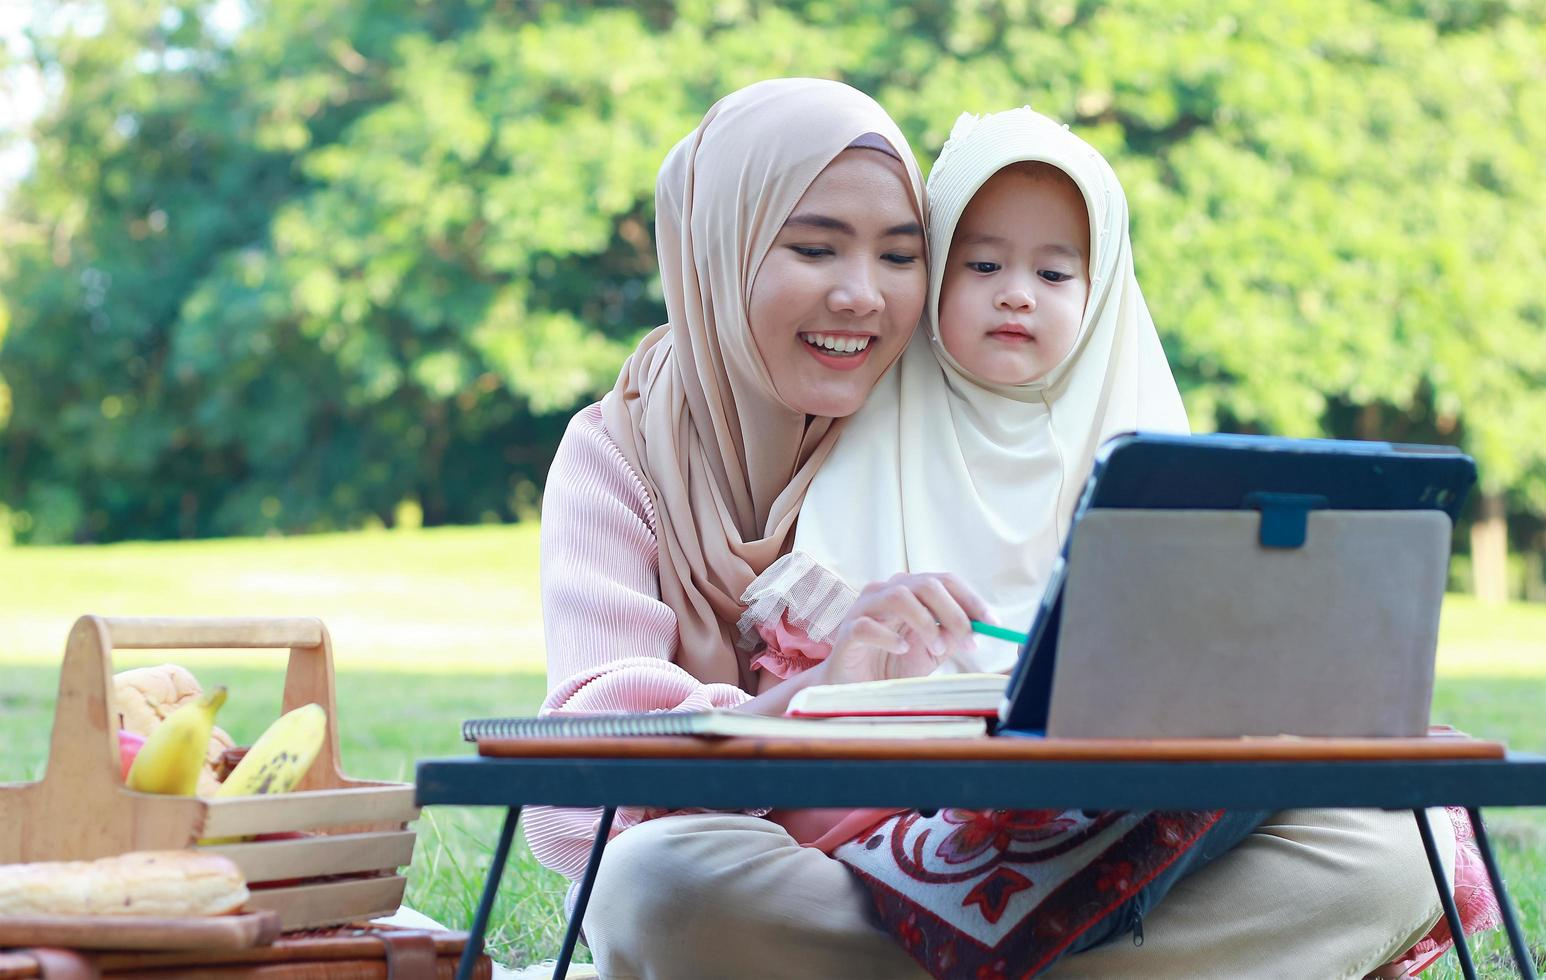 Muslim mothers and daughters enjoy their holidays in the park. Love and bond between mother and child photo